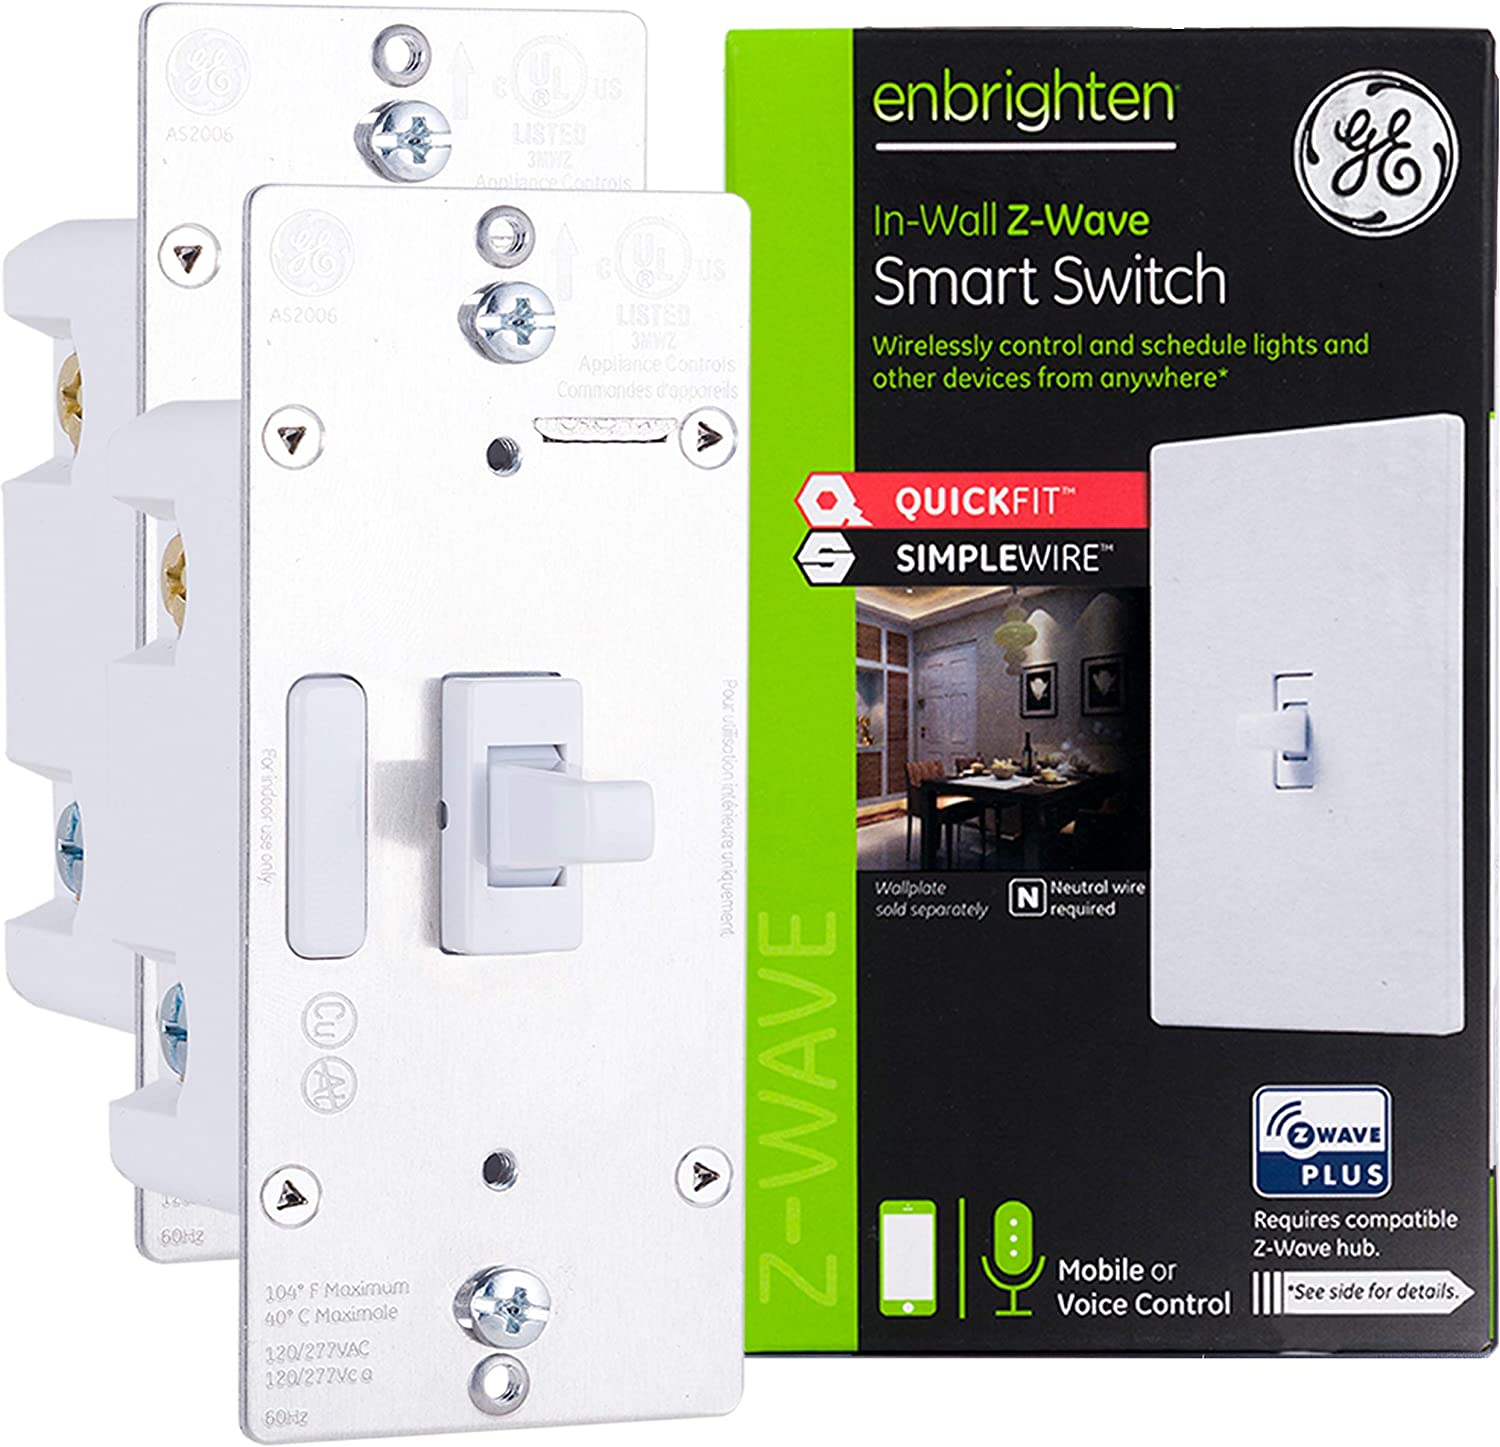 GE Enbrighten Z-Wave Plus Smart Light Switch 2-pack with QuickFit and SimpleWire, 3-Way Ready, Works with Alexa, Google Assistant, Zwave Hub Required